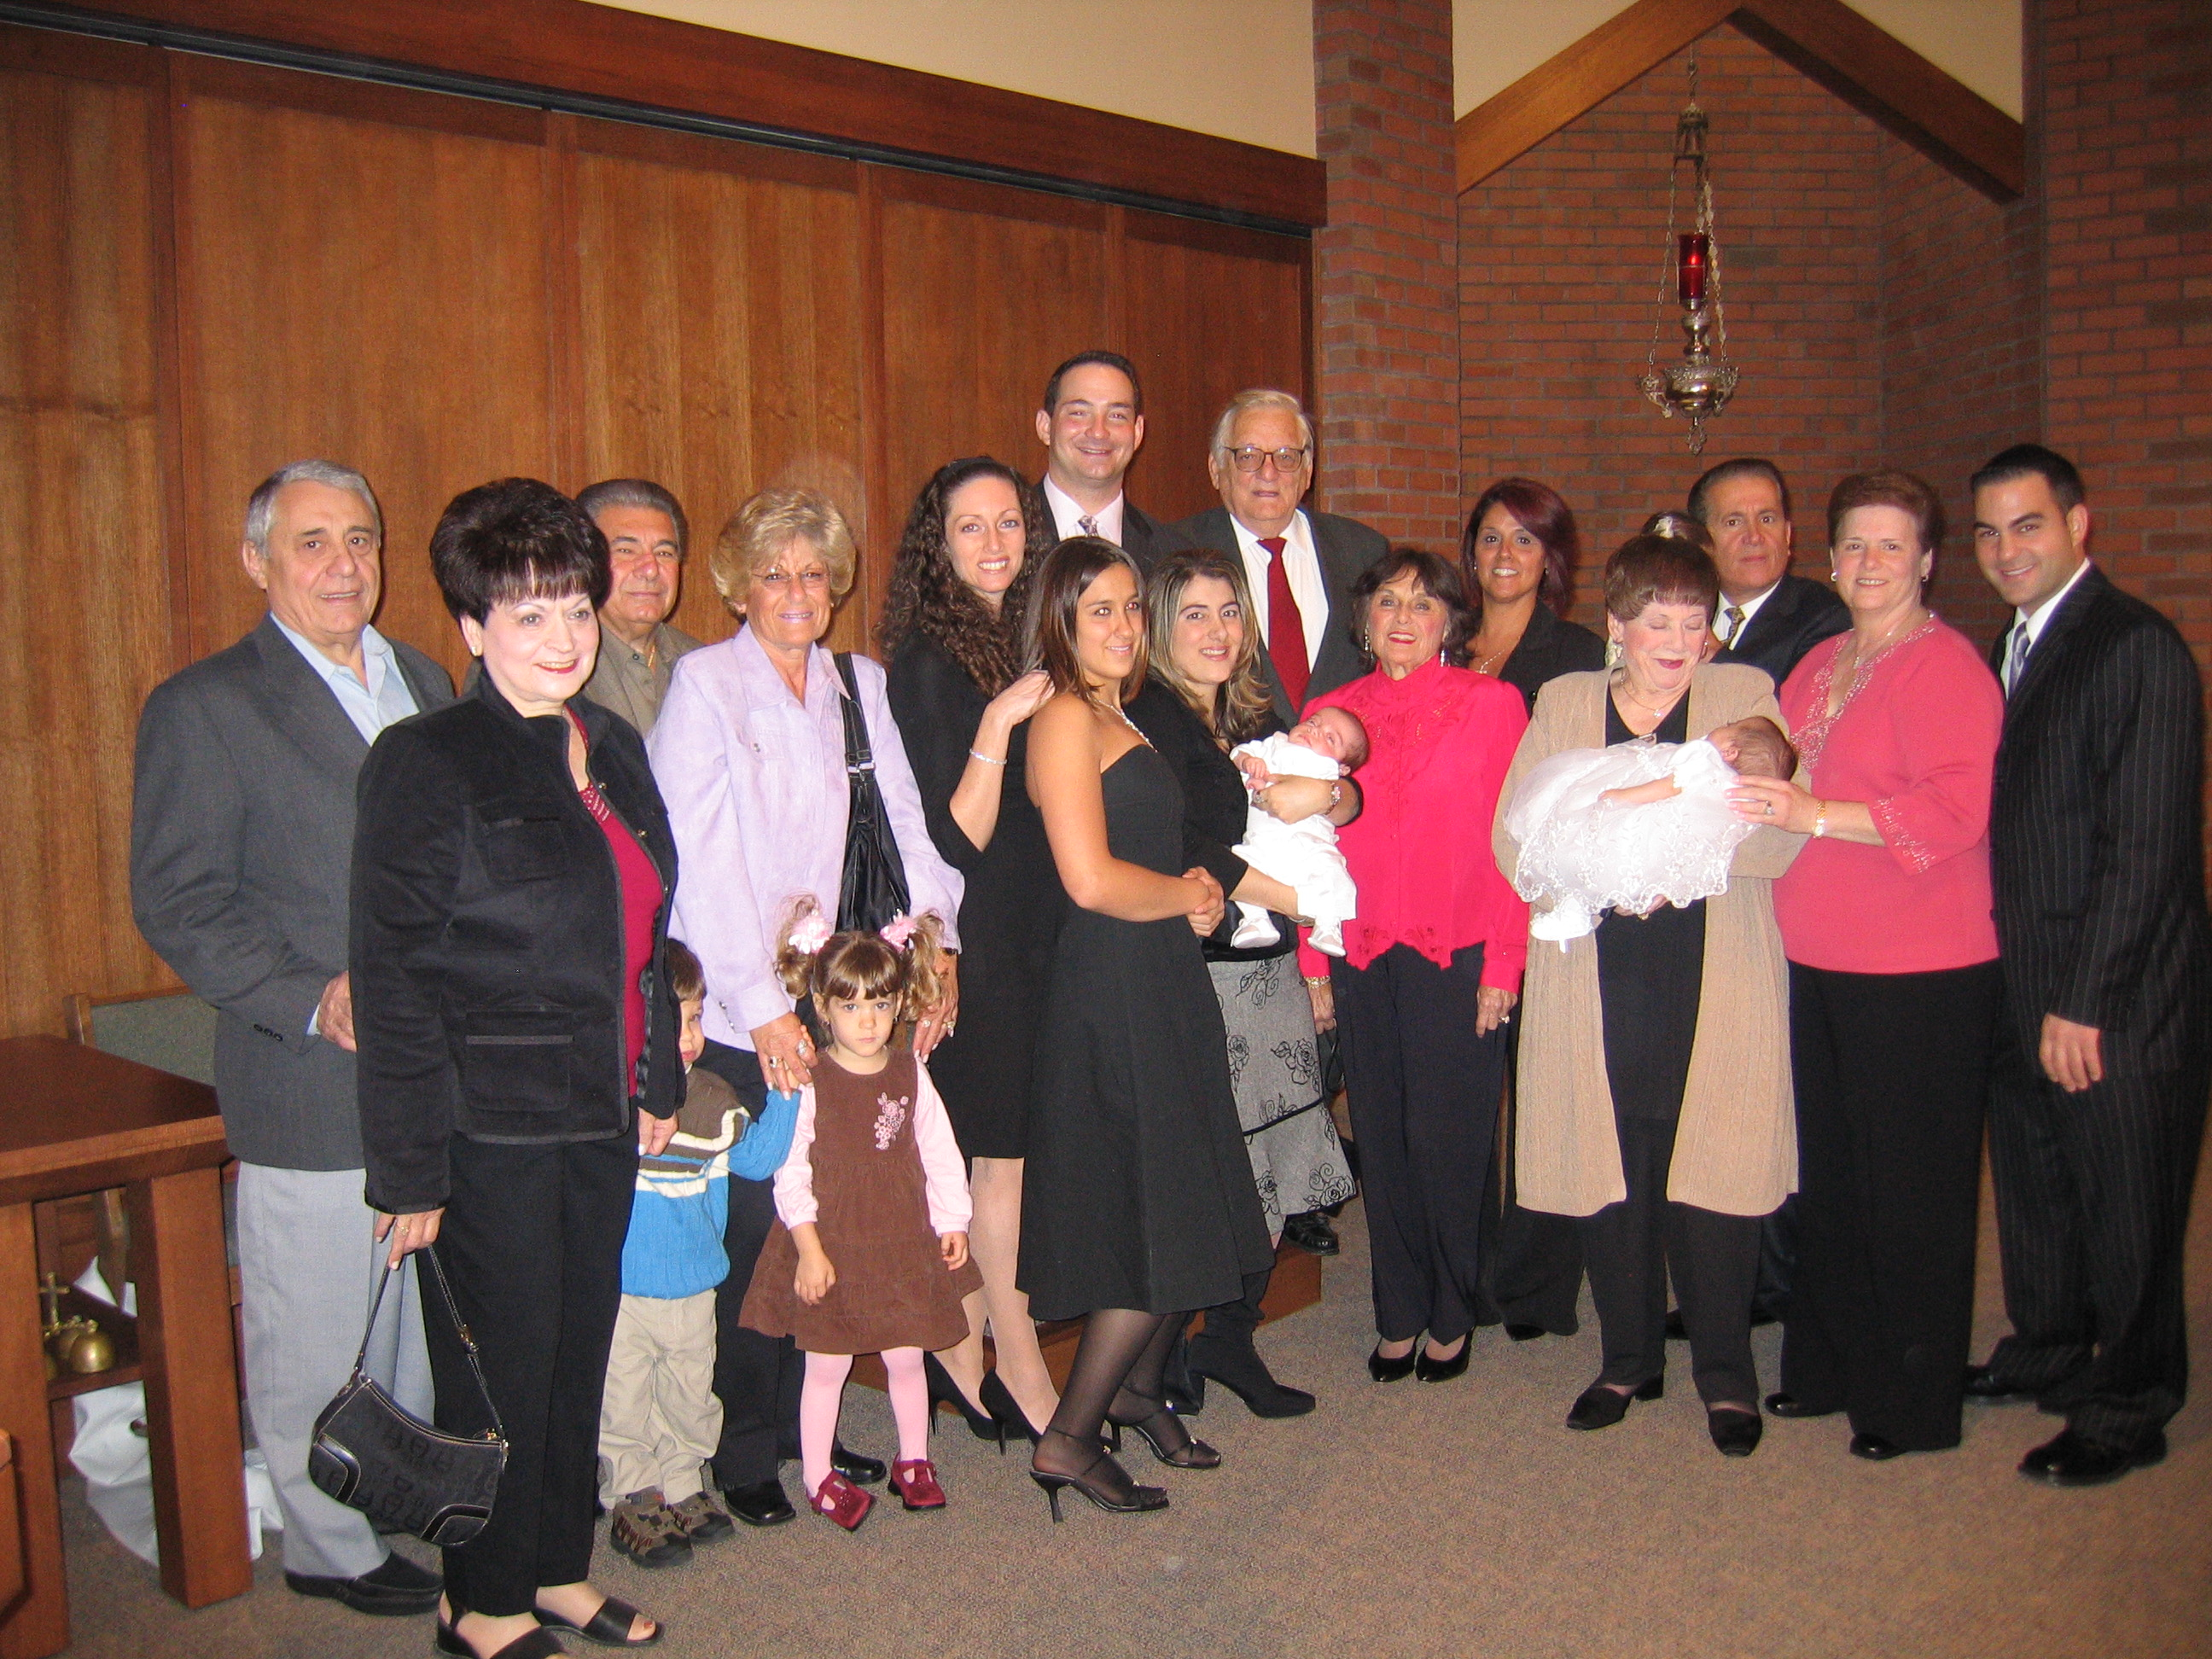 A Family Picture Christening Day